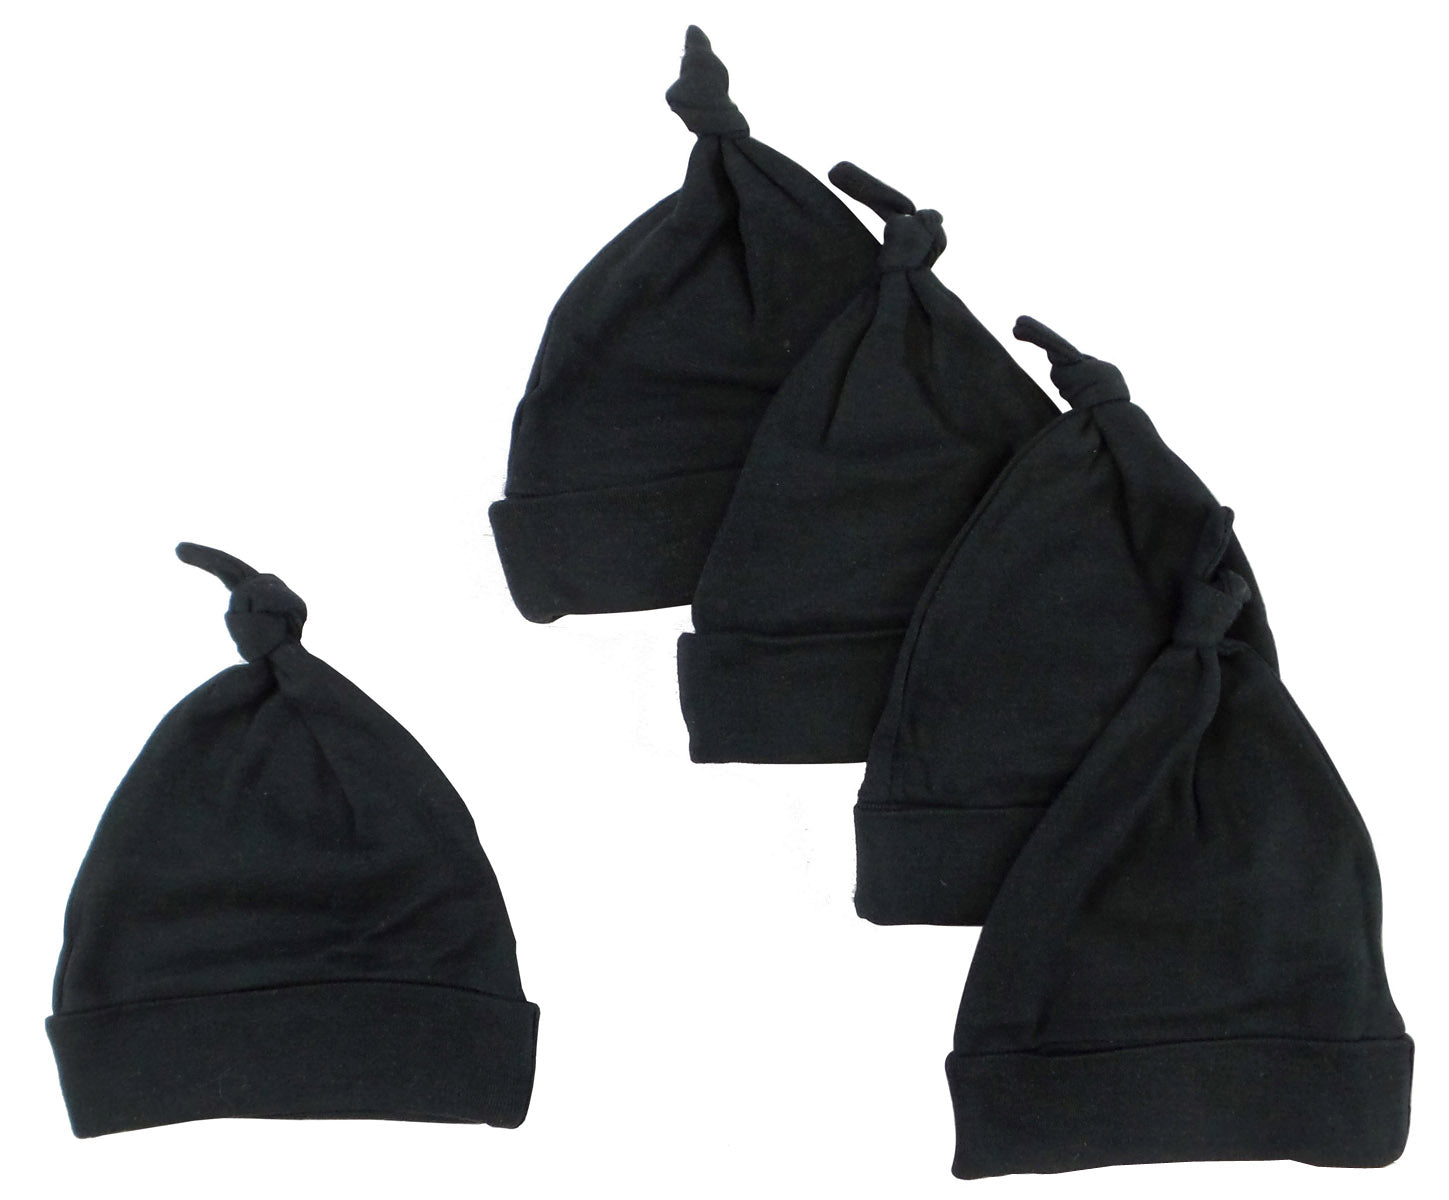 Bambini Black Knotted Baby Cap (Pack of 5)